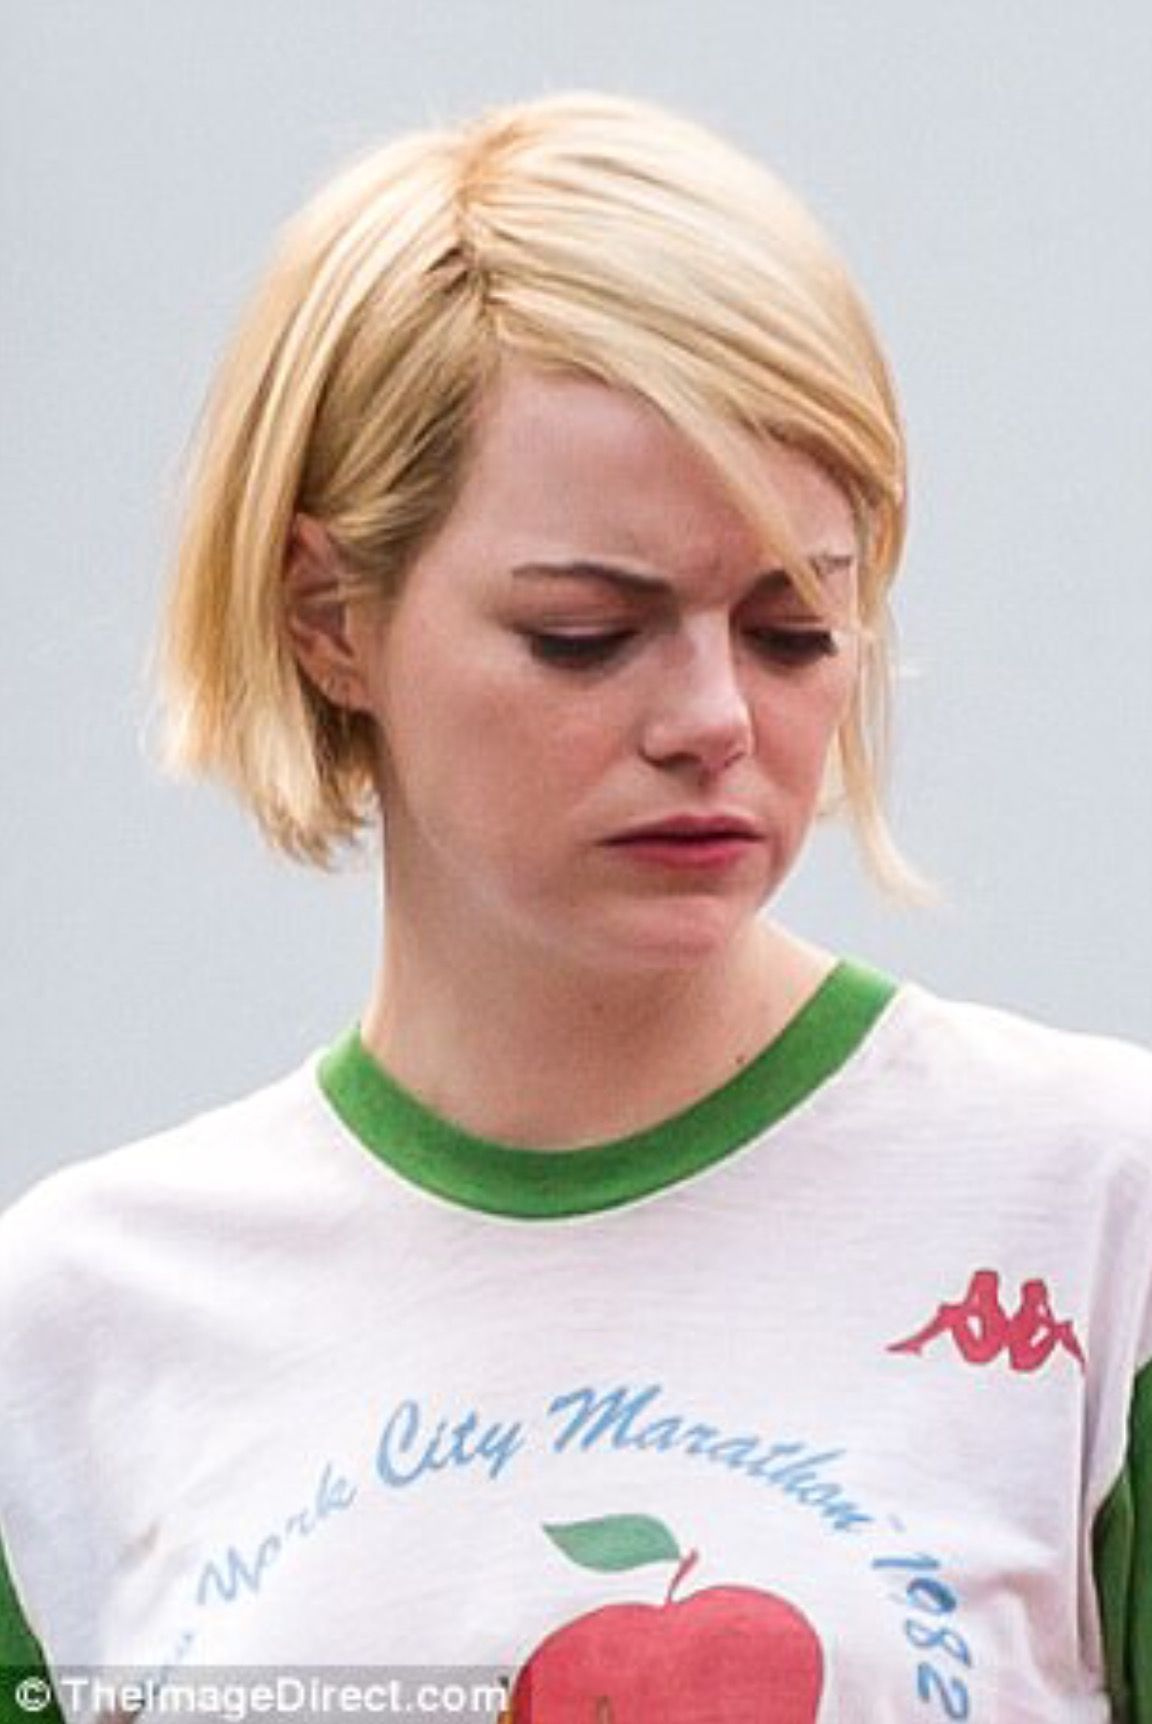 Pin By Ryan Sawyer On Girls Are Attractive Emma Stone Hair Emma